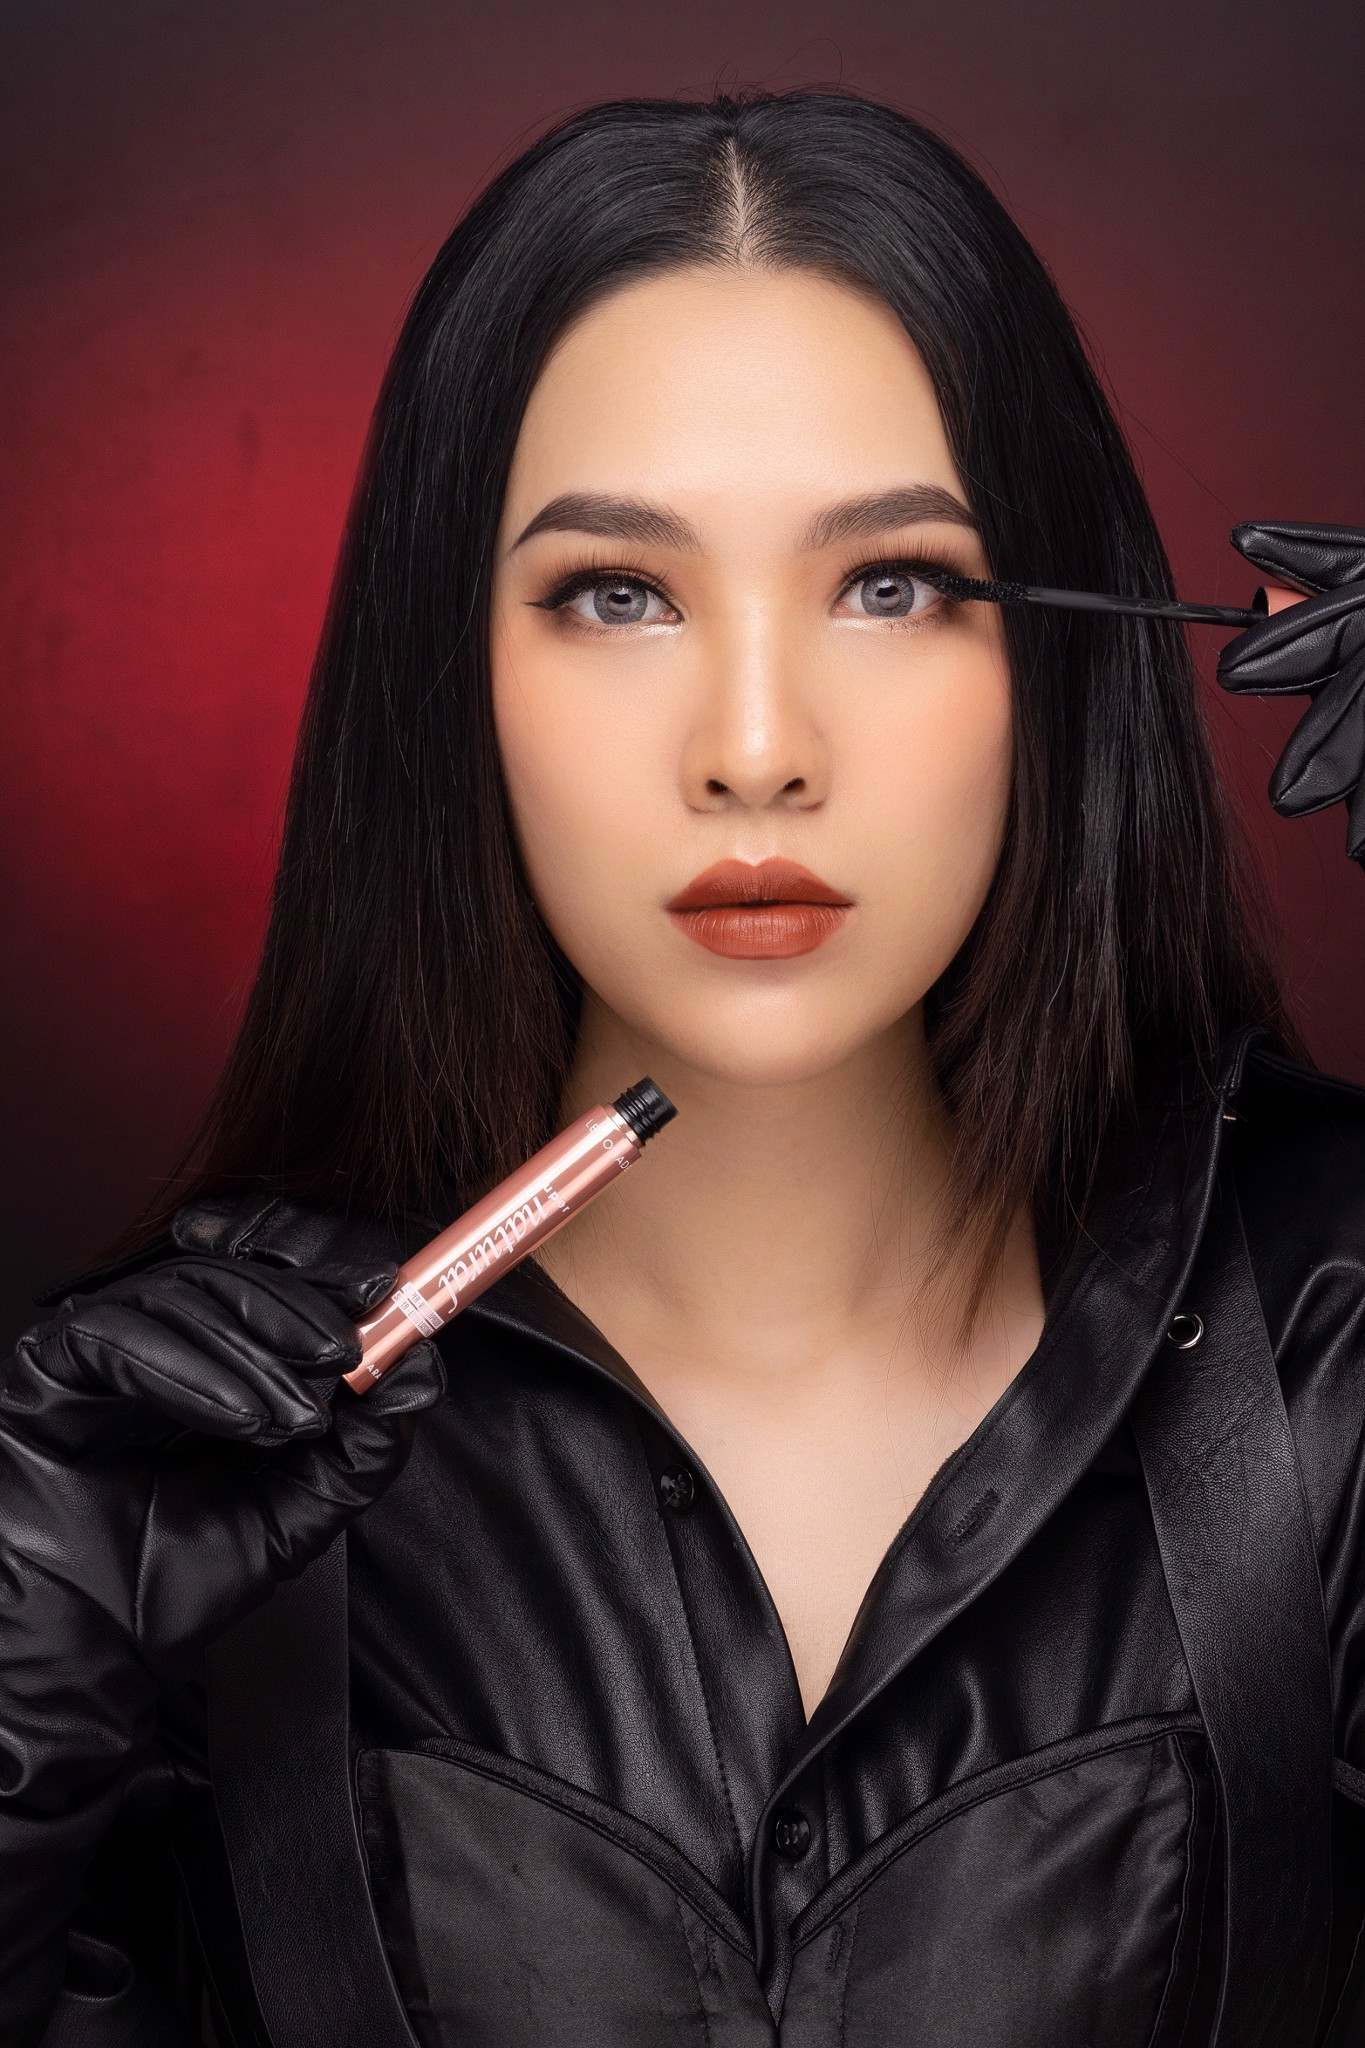 COMBO LEMONADE MASCARA SUPERNATURAL VÀ CHÌ KẺ MÀY WANT IT GOT IT